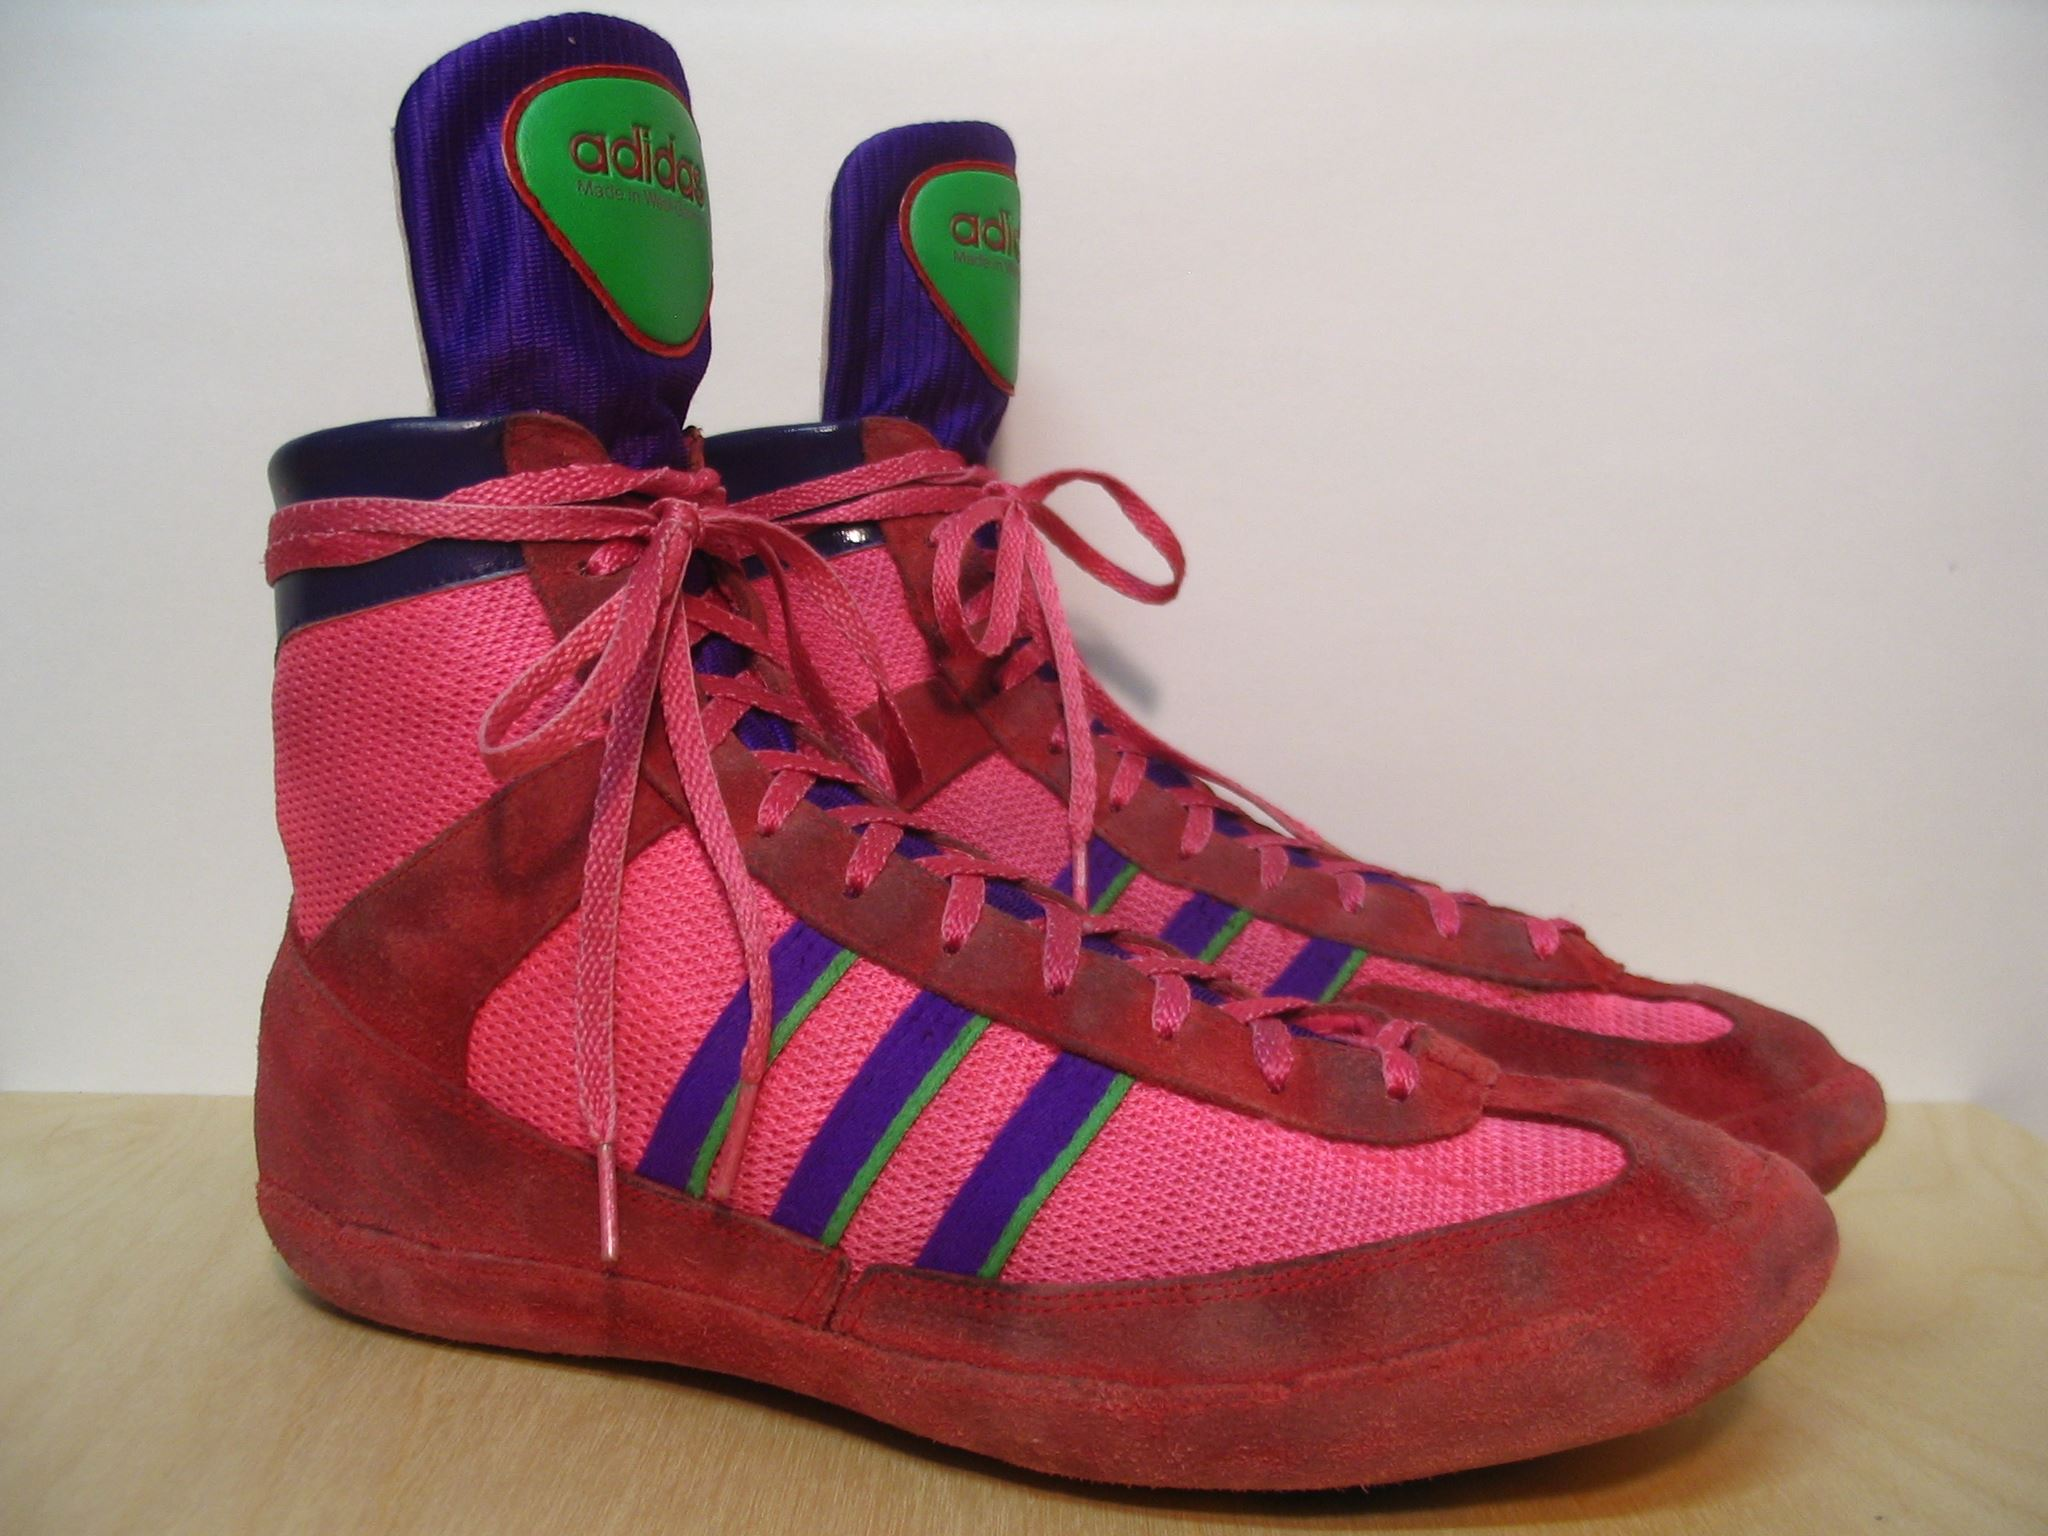 A Rookie's Guide To Wrestling Shoes